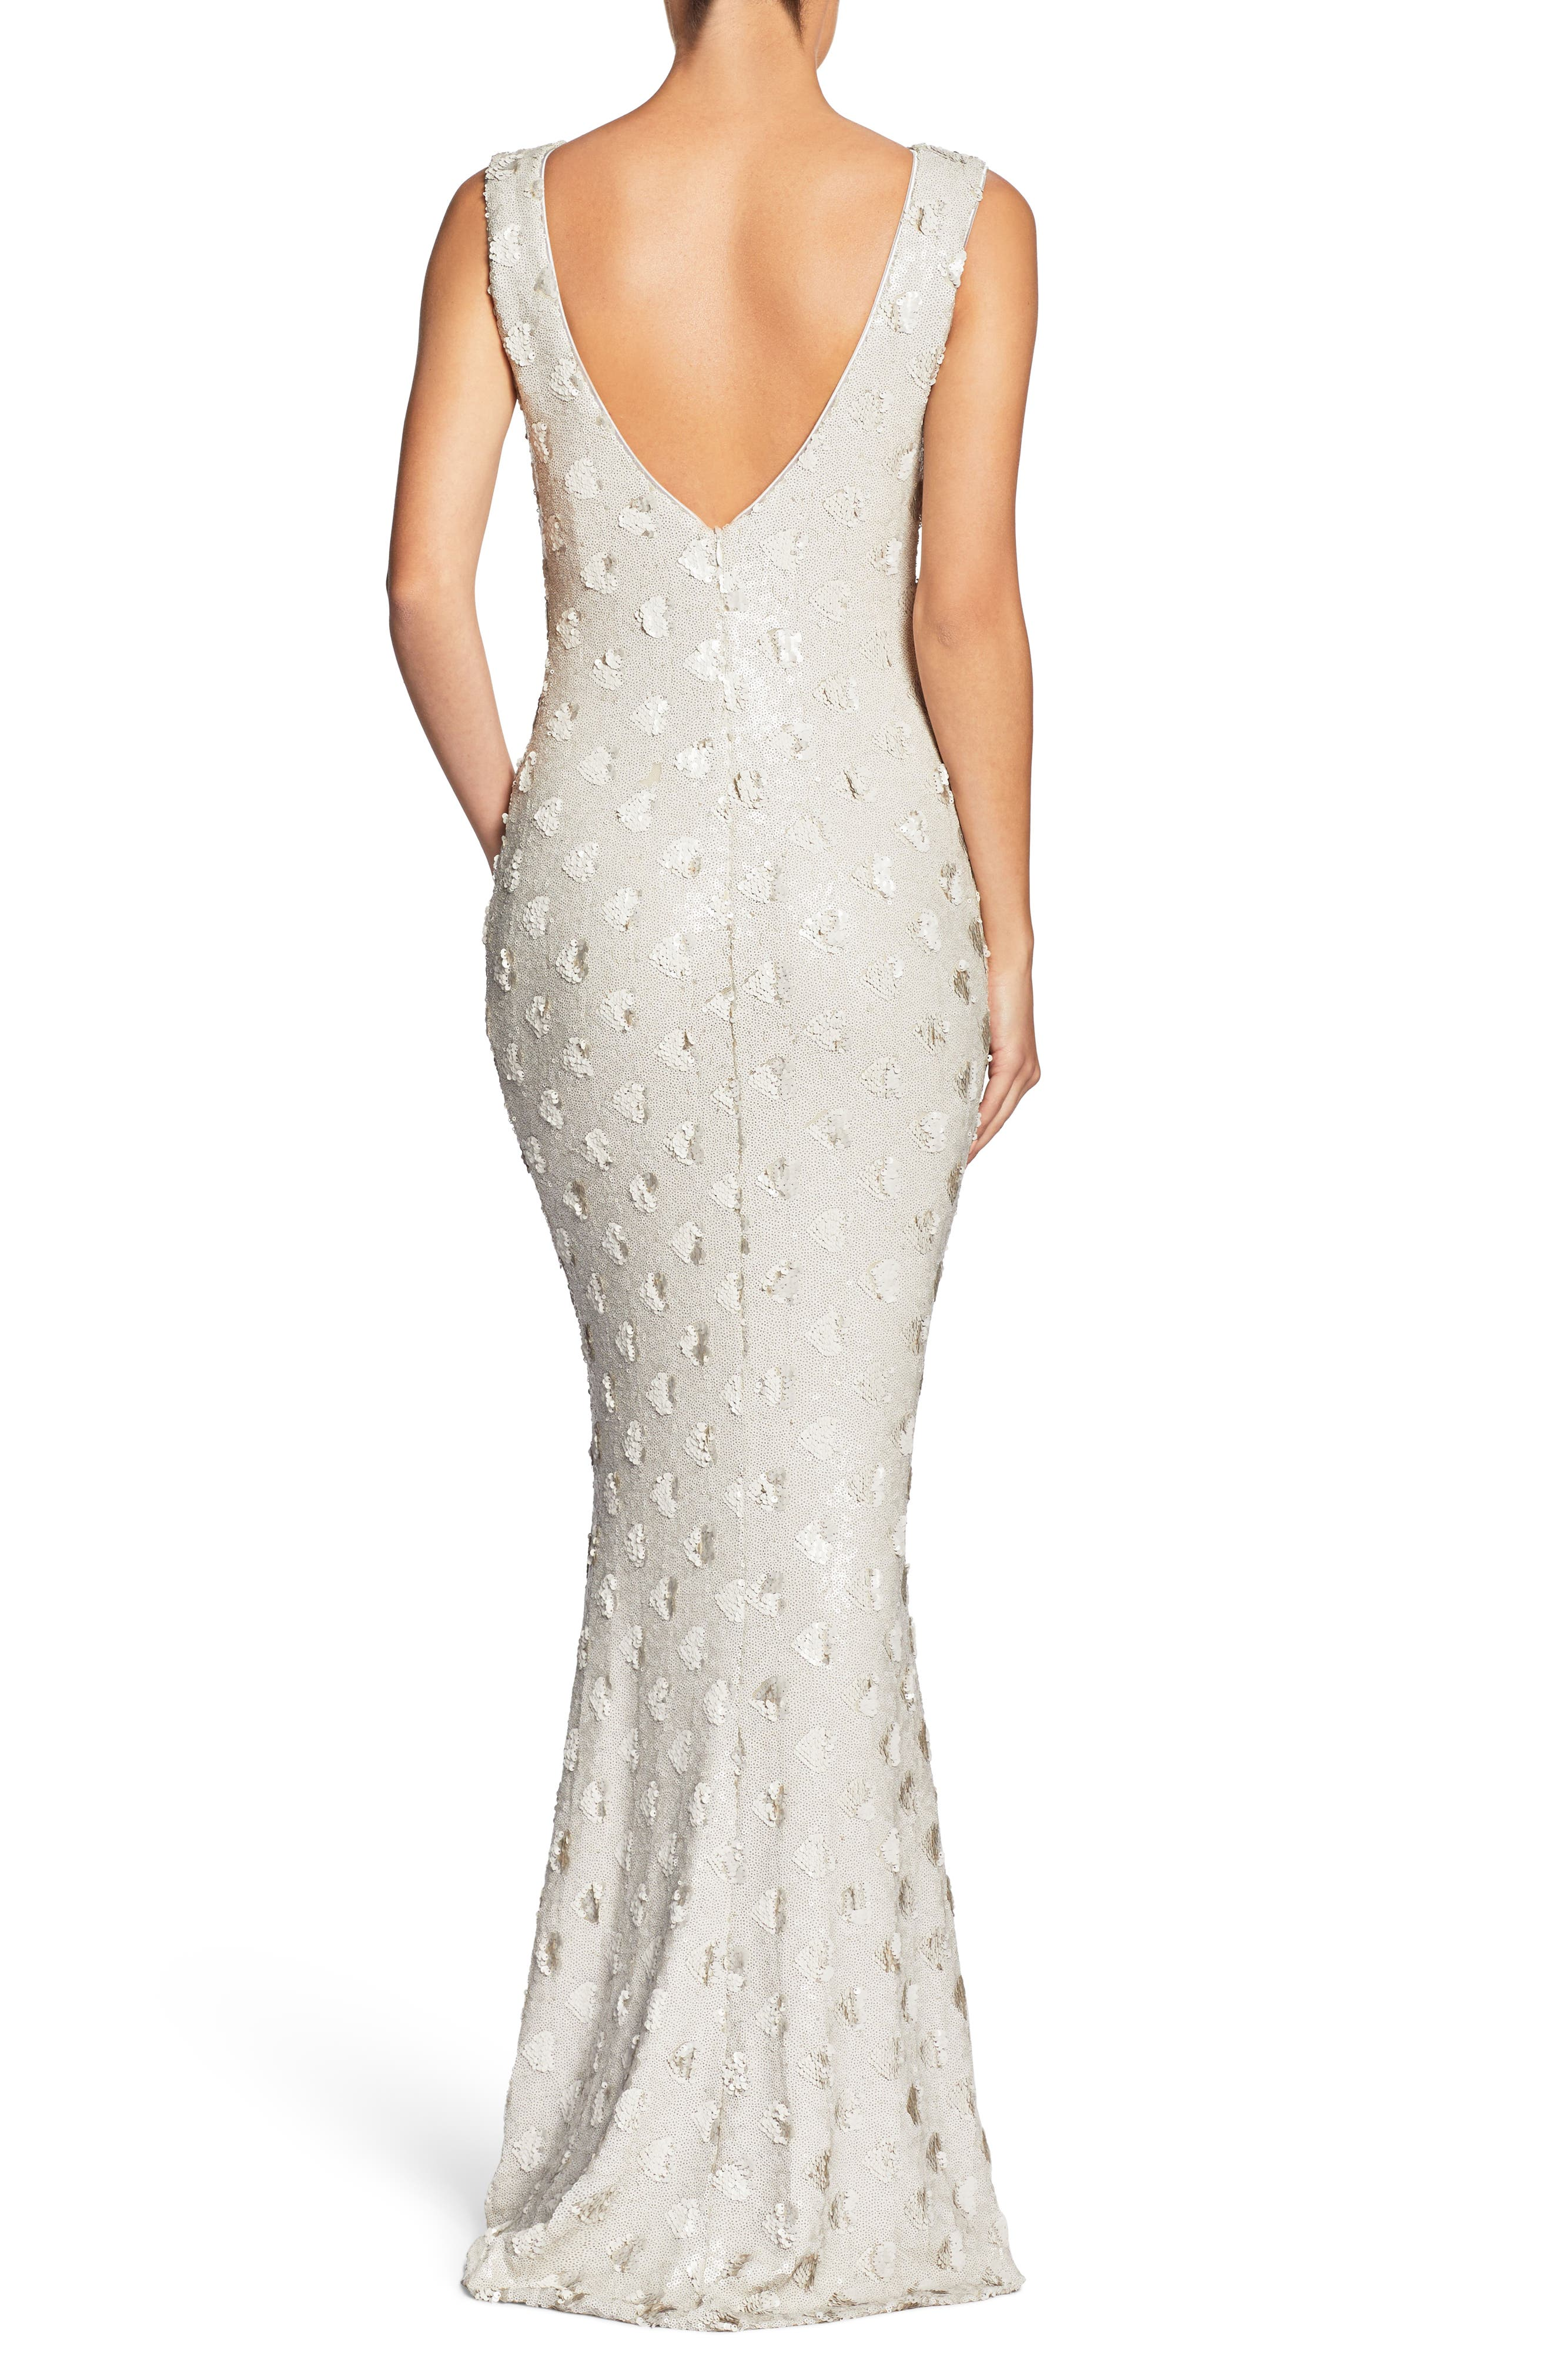 DRESS THE POPULATION, Yvette Sequin Trumpet Gown, Alternate thumbnail 2, color, 102